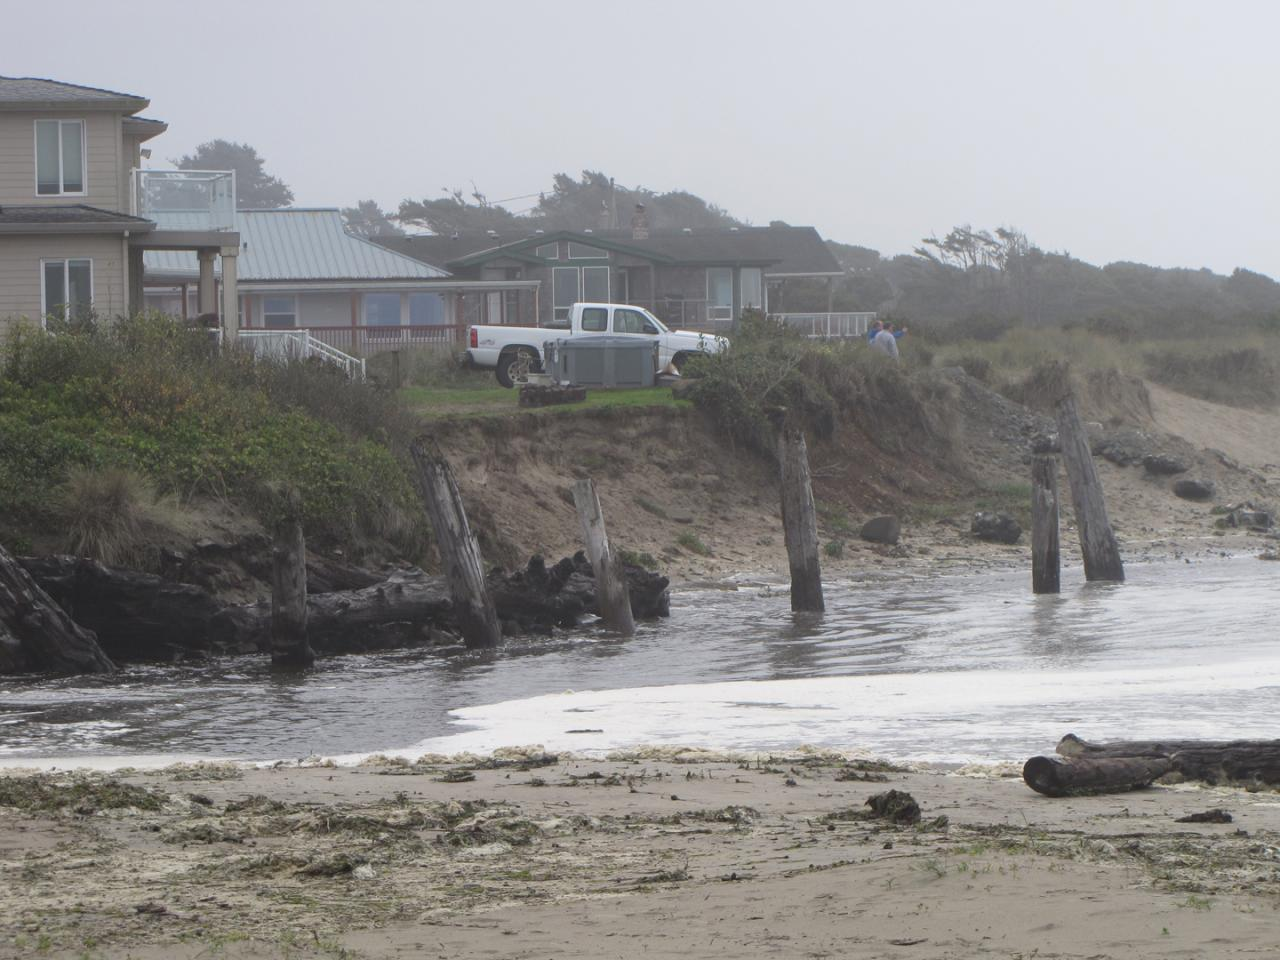 King tide high tide, showing the property next to Saltair Creek that requested riprap installation back in March 2015. Request was denied and is currently being appealed.